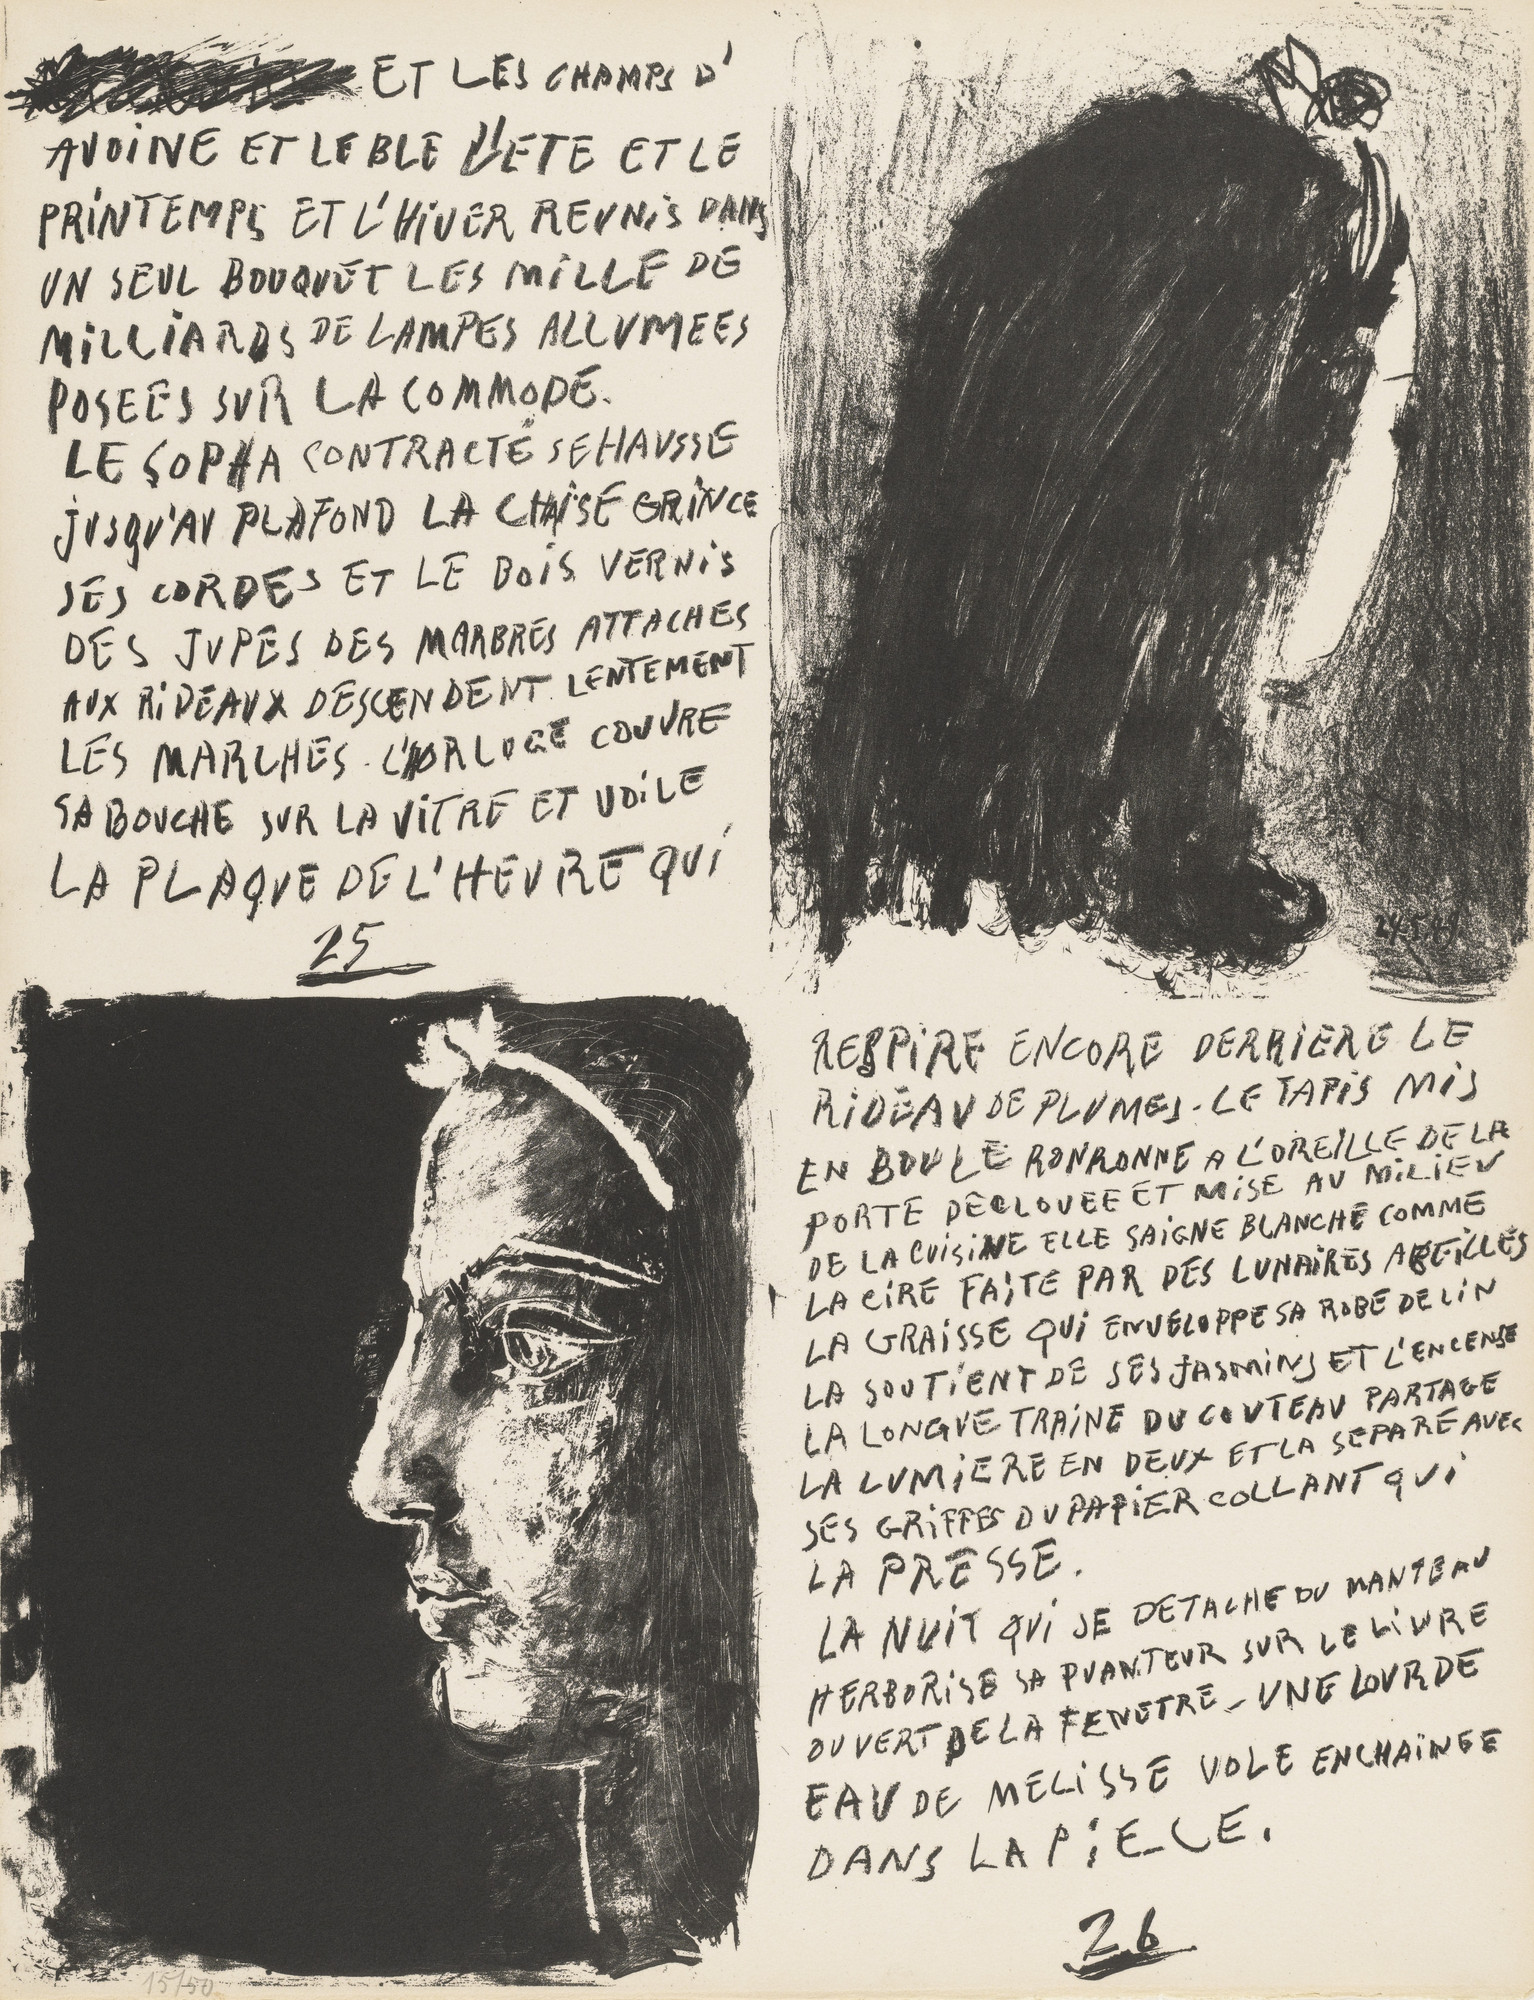 Pablo Picasso. In-text plates (folio 14) from Poèmes et lithographies. 1949, published 1954